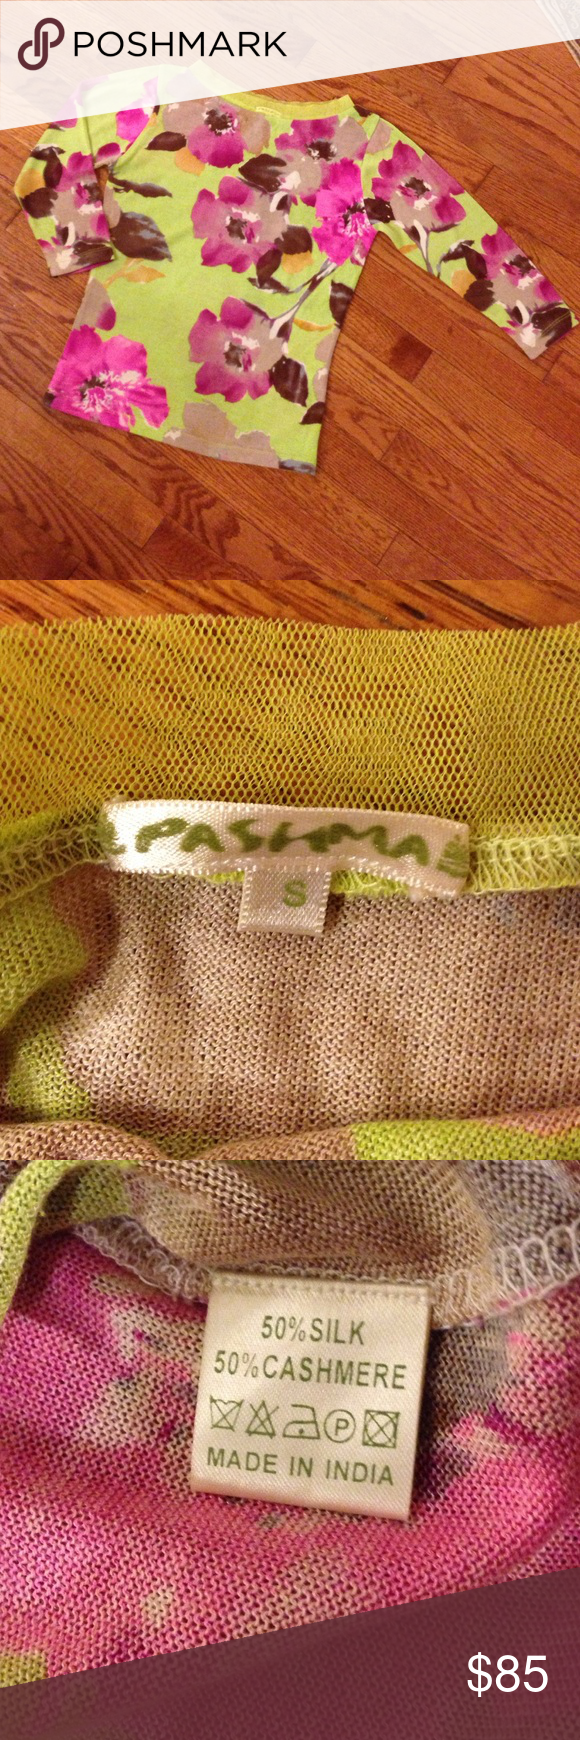 """Pashma Floral Silk & Cashmere Sweater 🌺 This sweater is so pretty!!! 50% silk, 50% cashmere. Lightweight & so soft with feminine sheer collar detail. Made in India 🇮🇳.  Measures approximately 20"""" top to bottom. 16"""" pit to pit. Sleeves 16"""". Marked small but this runs like an XS or maybe an XXS so check out measurements. Excellent condition, looks barely worn! 🌺💐🍀🌹 Pashma Sweaters Crew & Scoop Necks"""